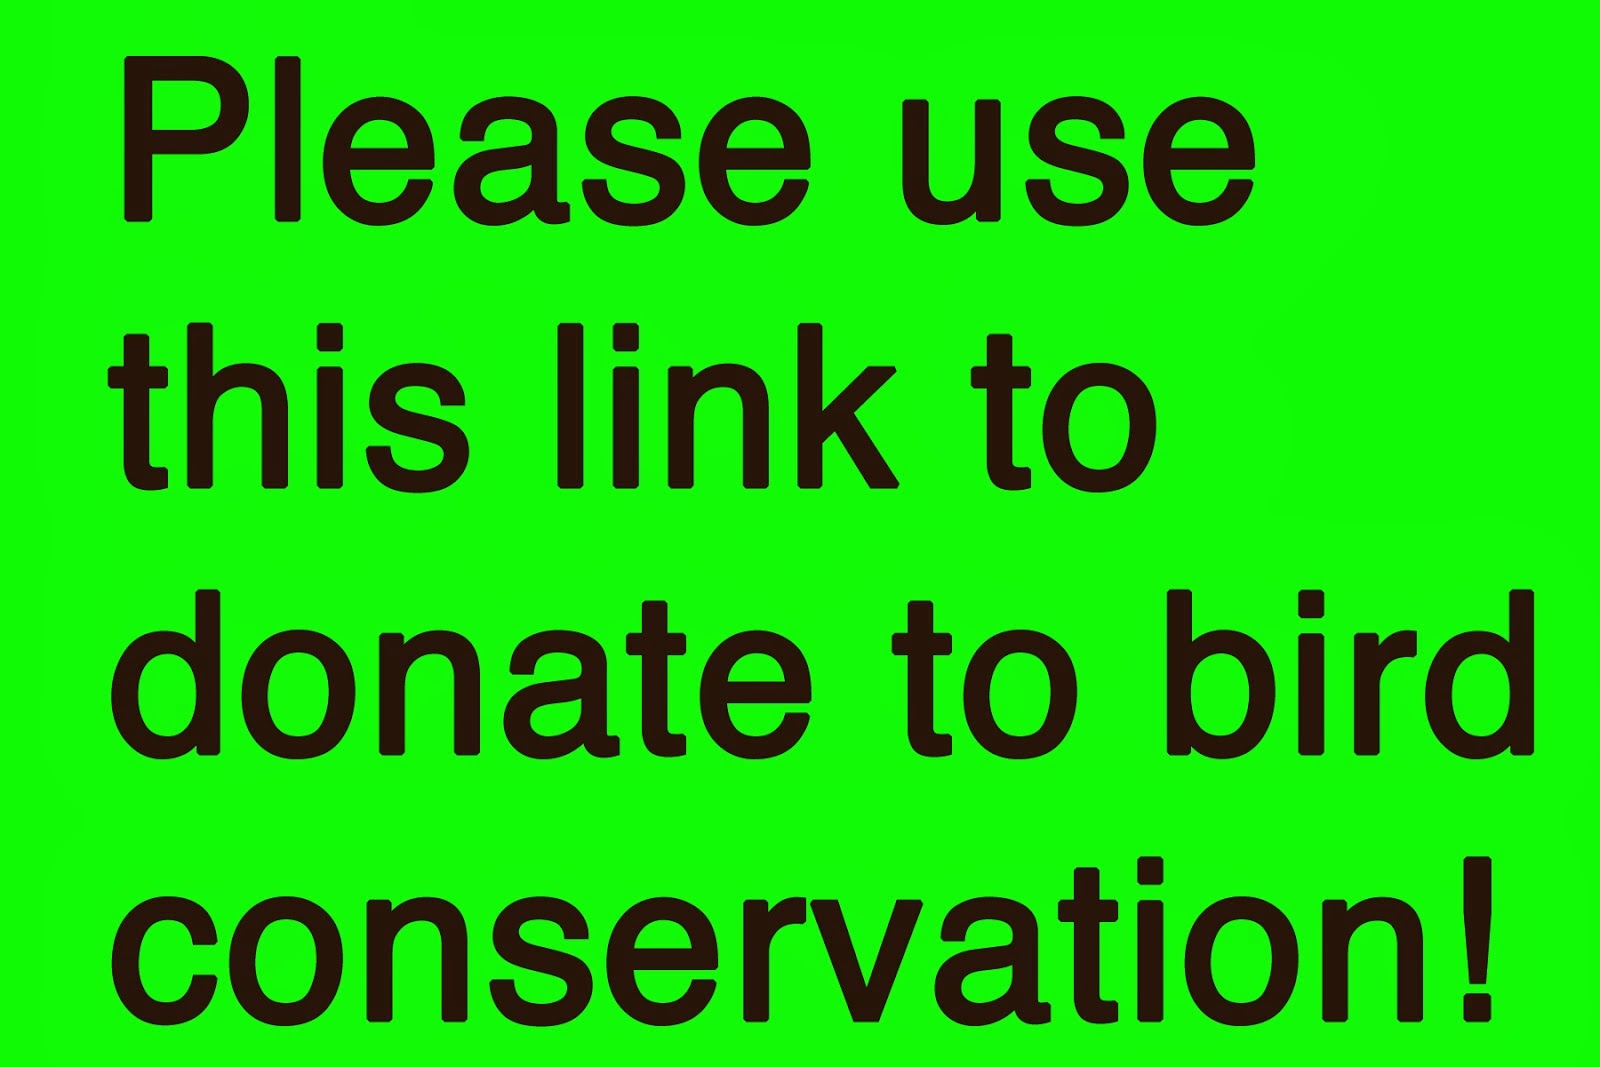 Donate for bird conservation